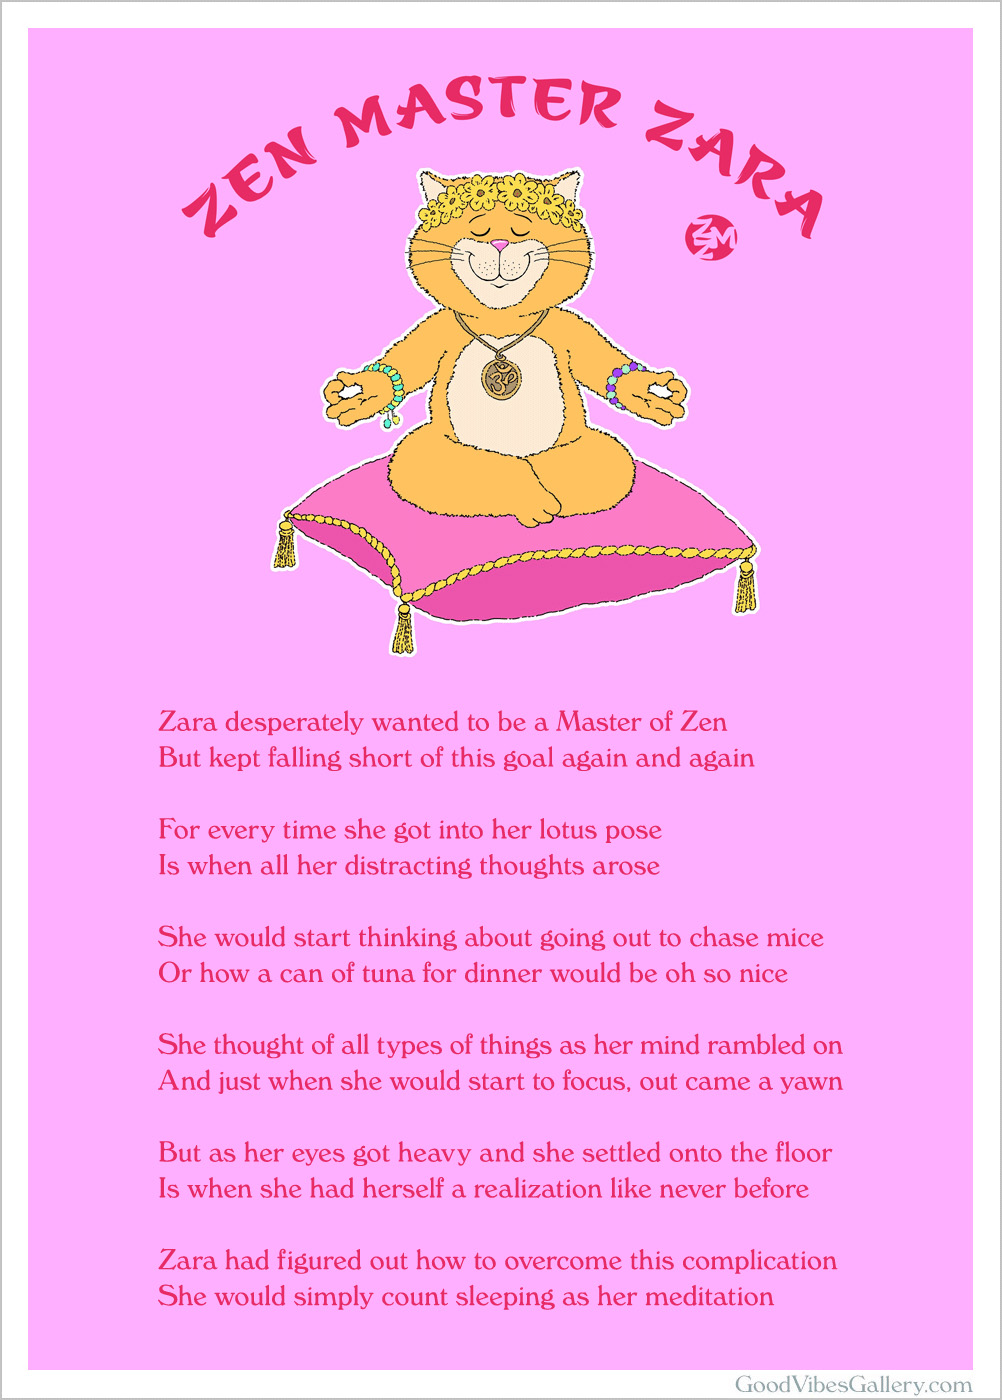 cute-cat-illustration-drawing-kids-room-story-childrens-book-nursery-rhymes-room-art-print-meditation-yoga-reiki-zen-master-zara-funny-humor-poems-by-pete-poemsbypete-goodvibesgallery-good-vibes-gallery